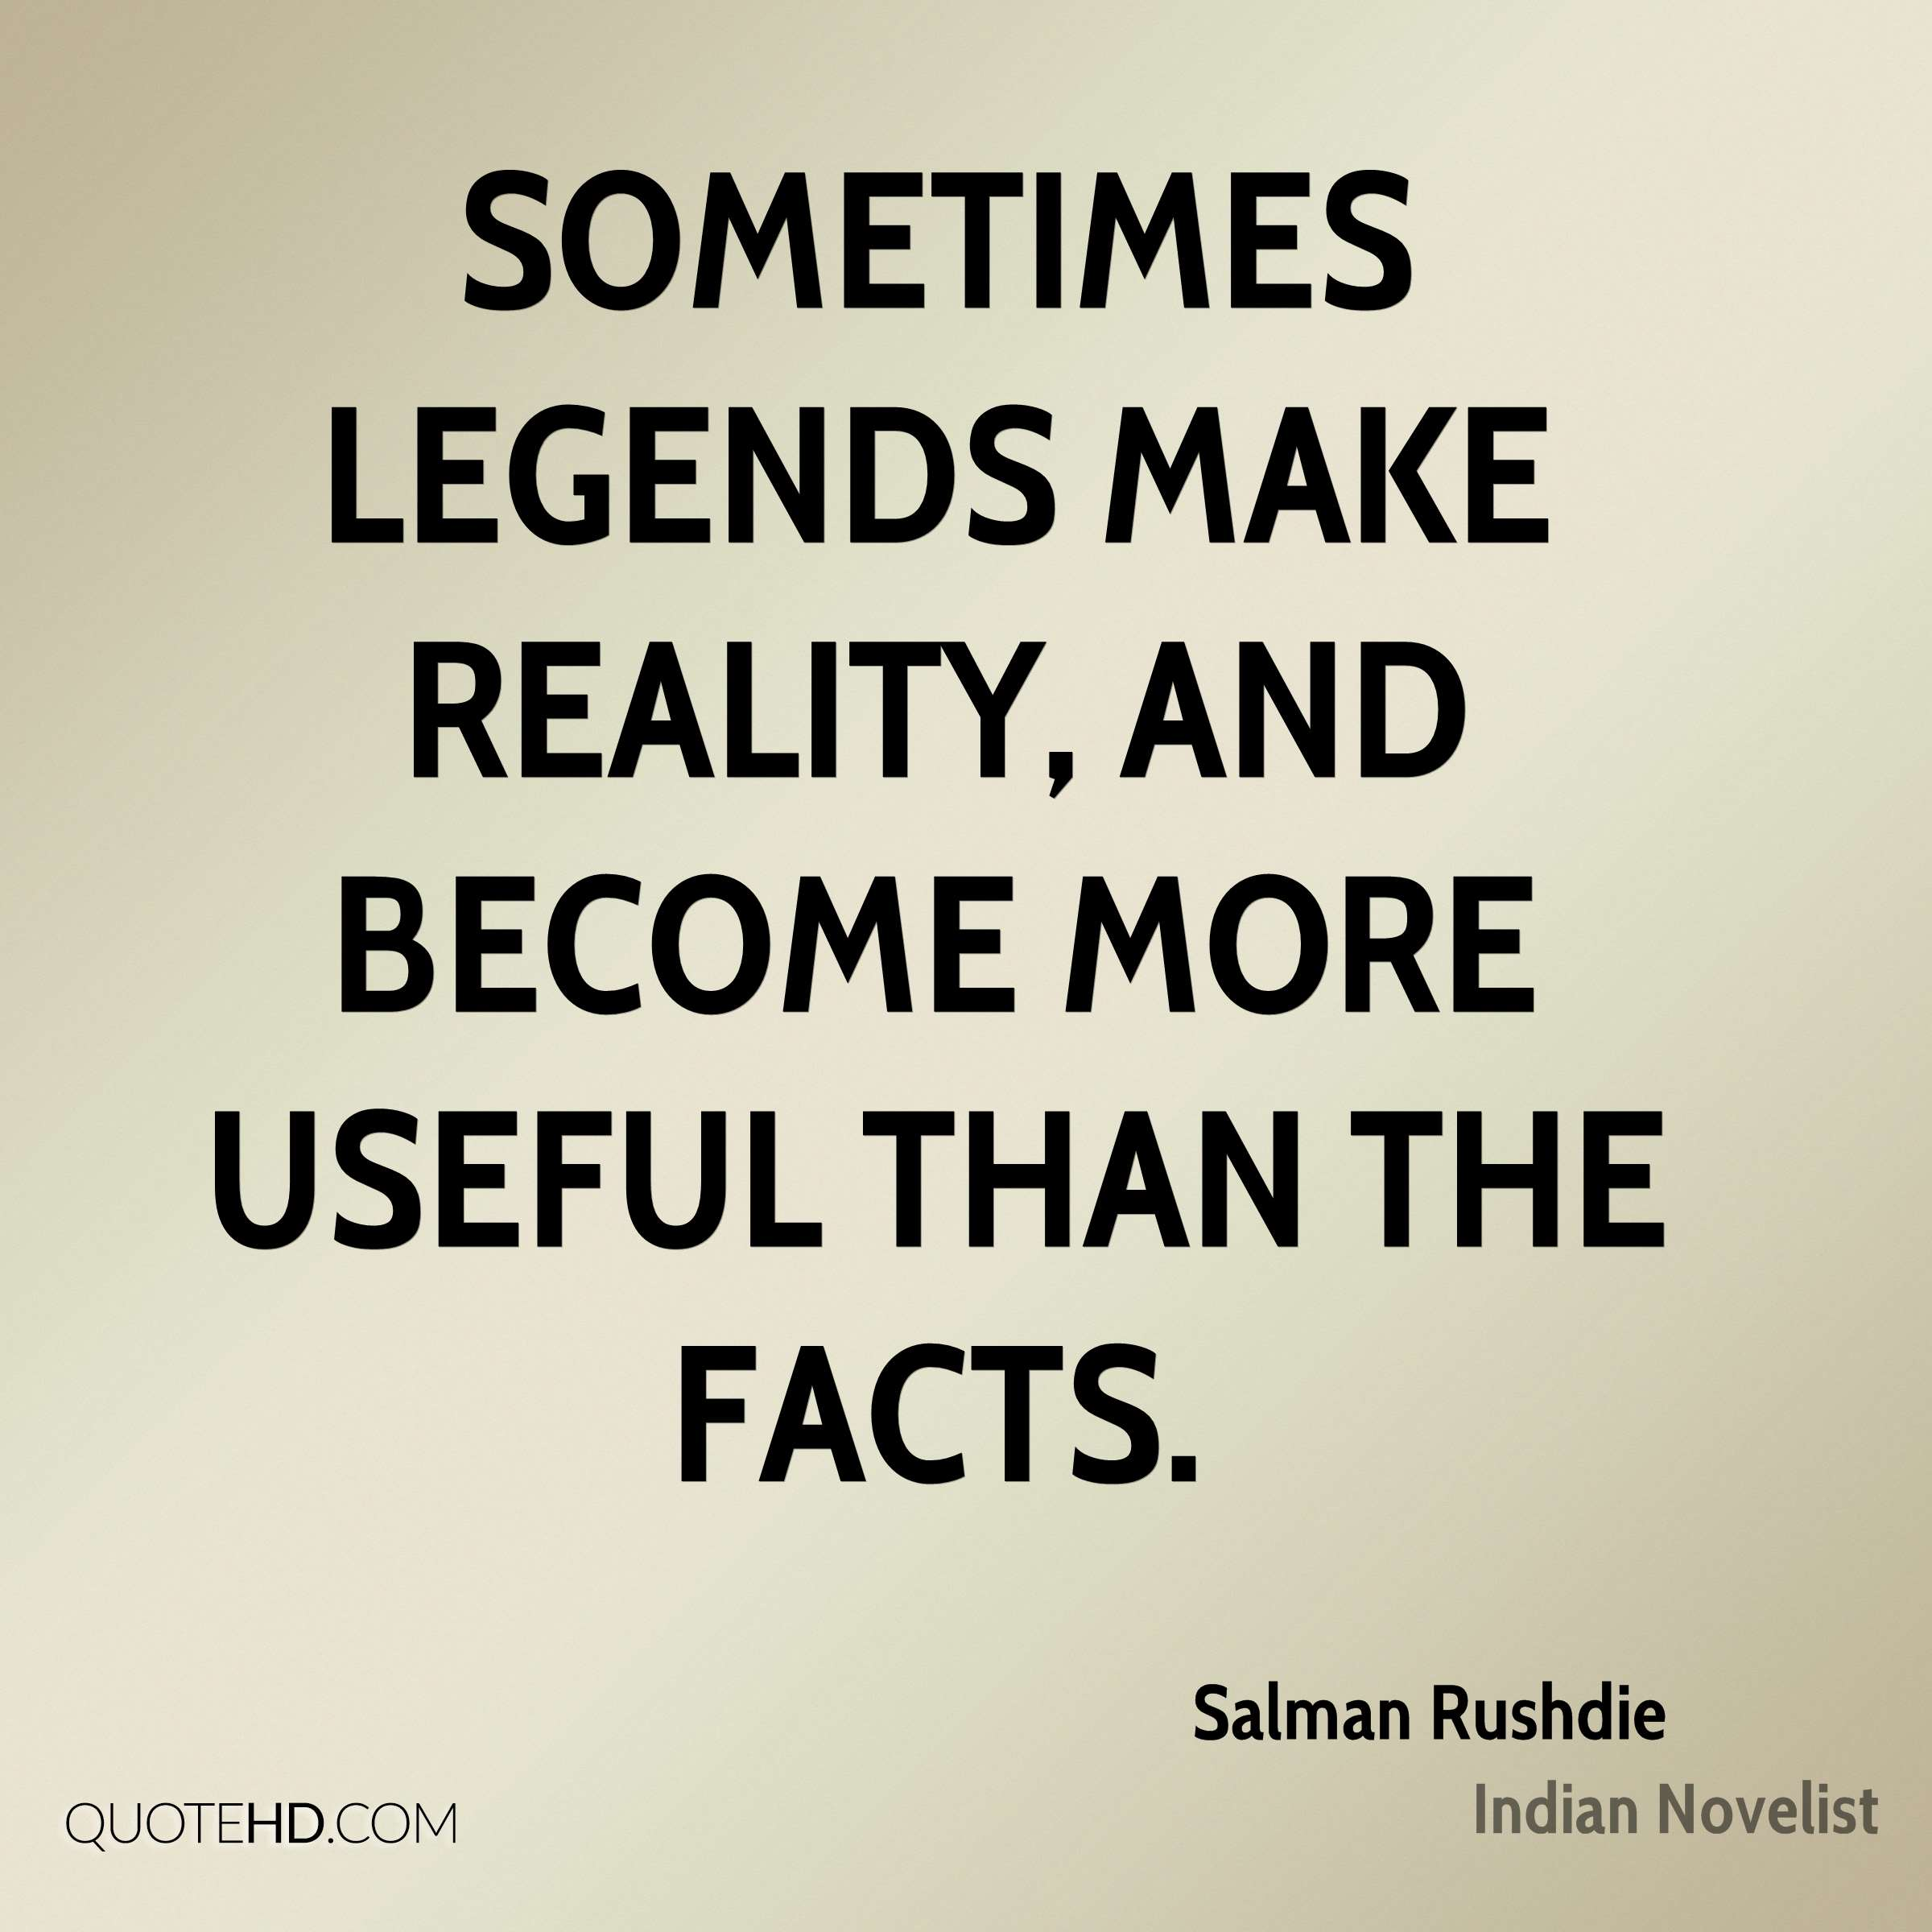 Sometimes legends make reality, and become more useful than the facts.